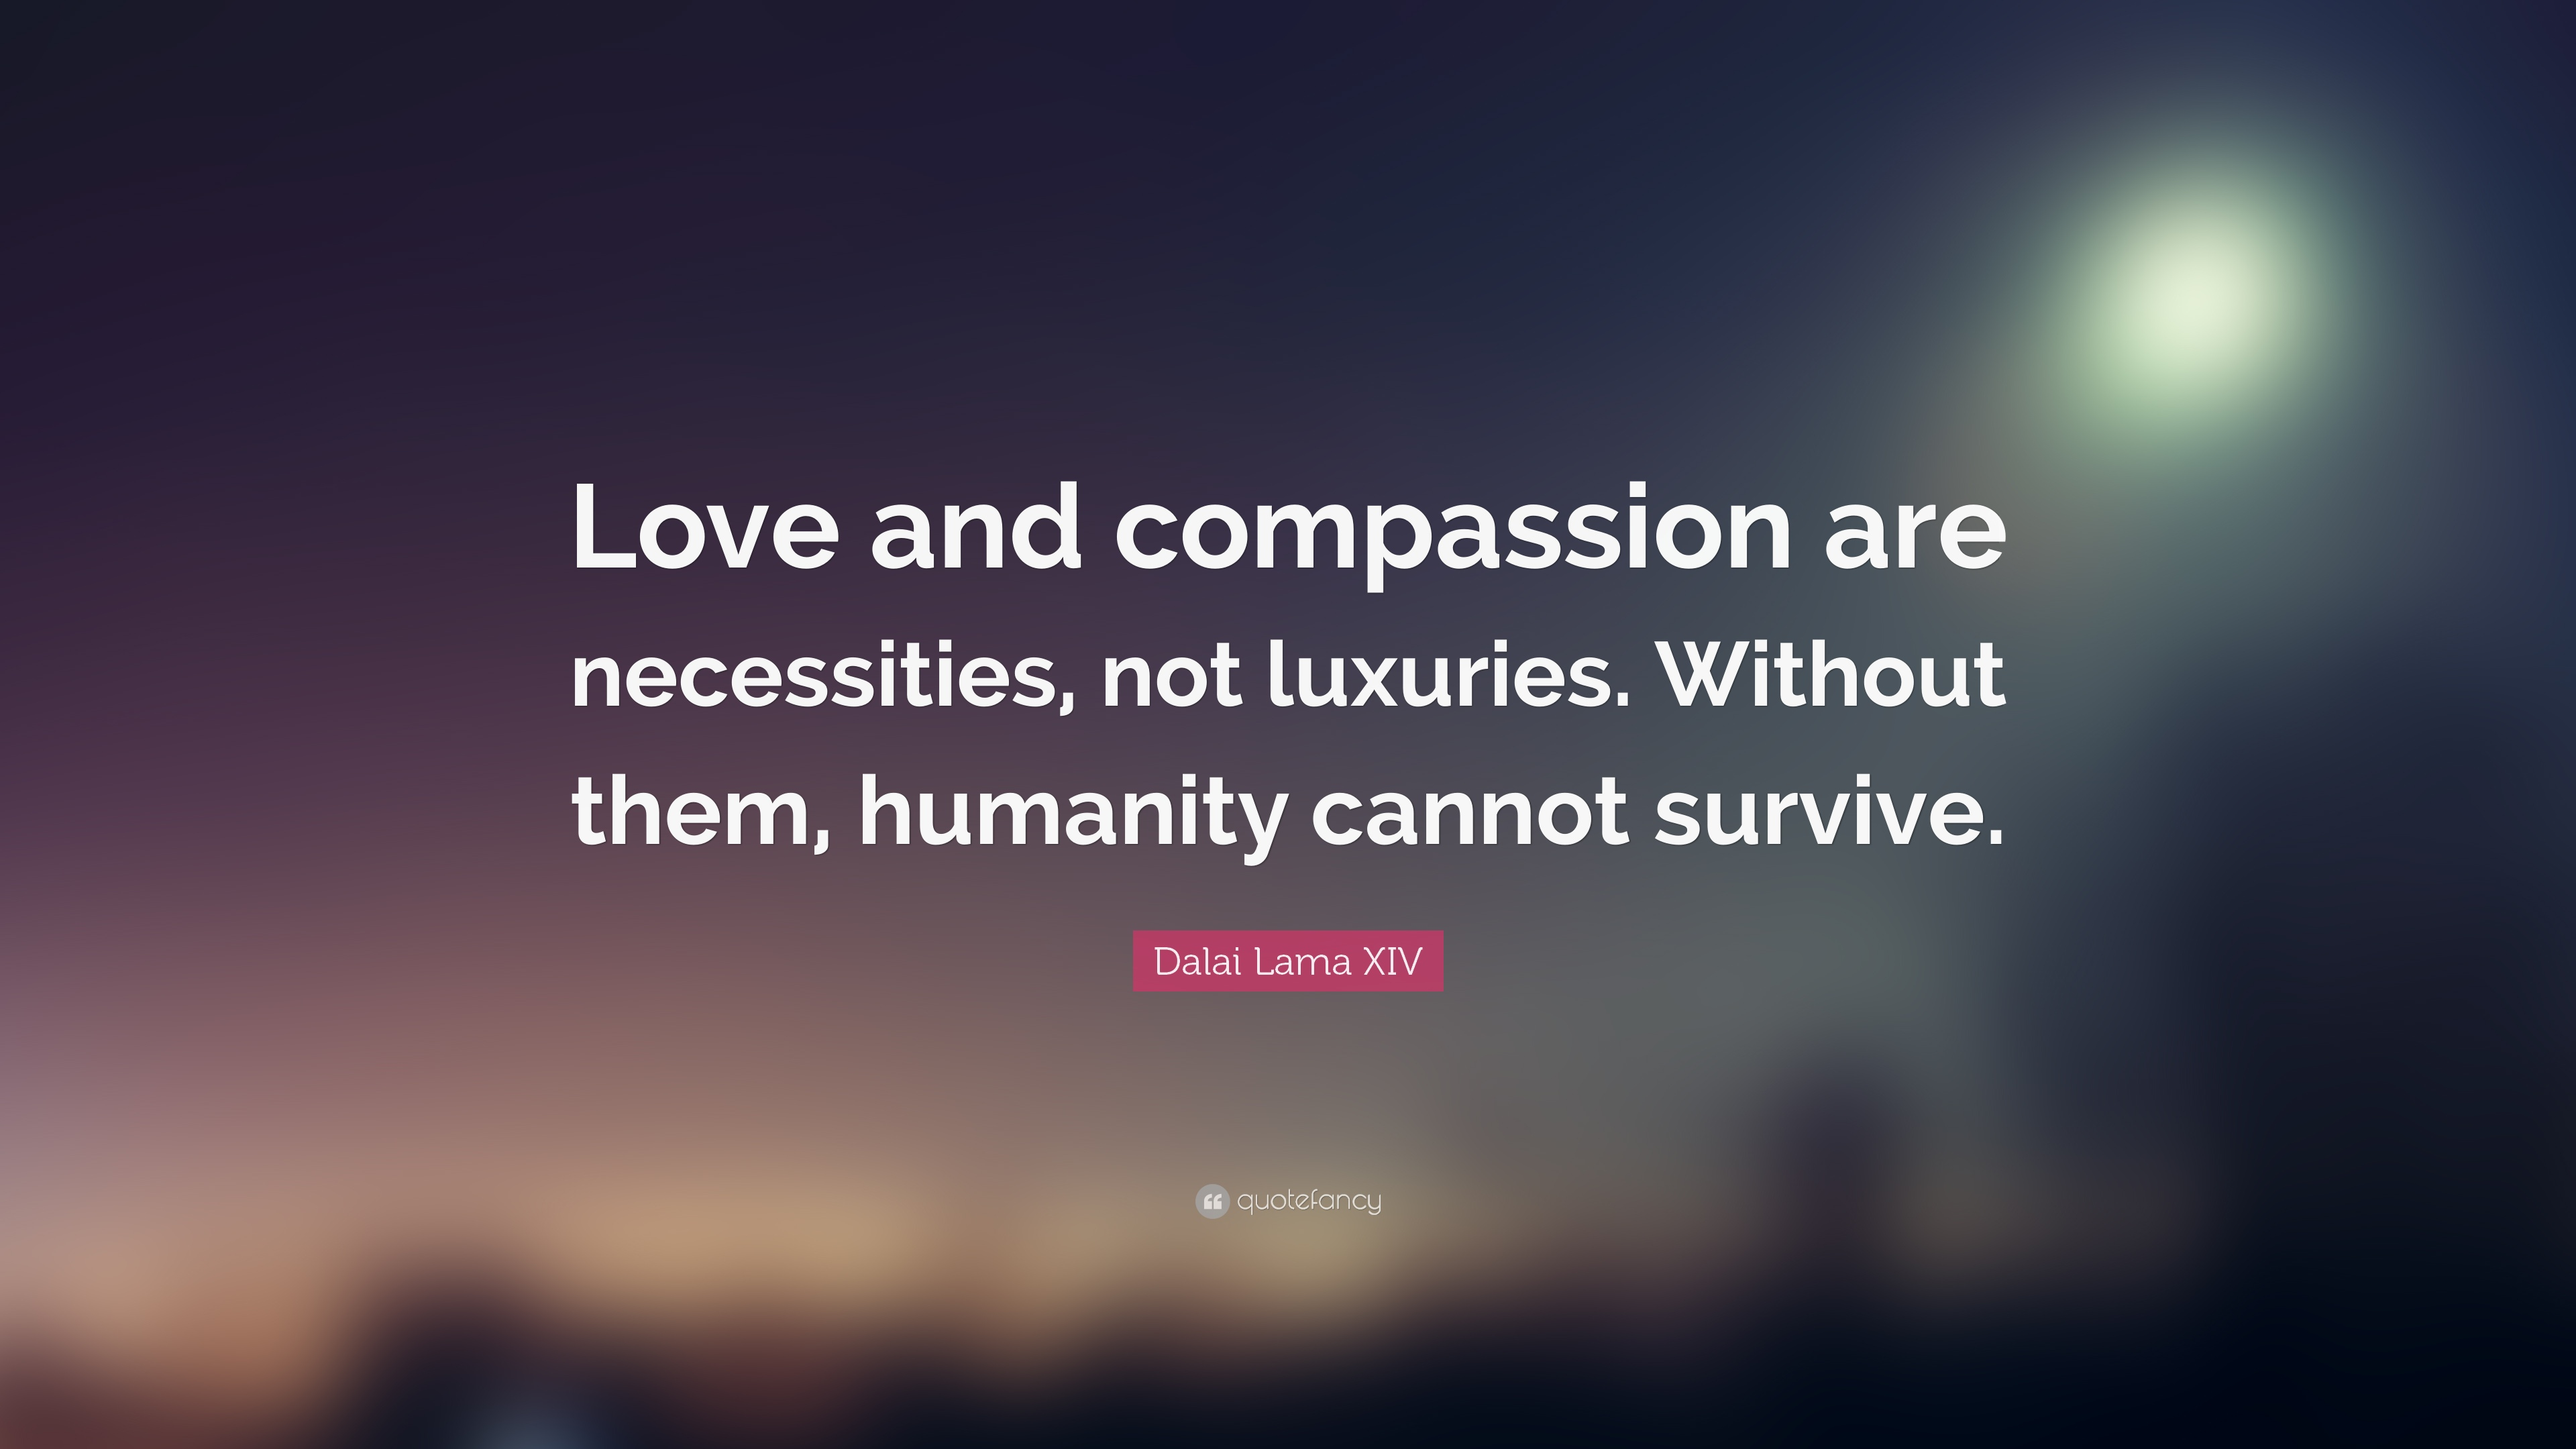 Dalai Lama Xiv Quote Love And Compassion Are Necessities Not